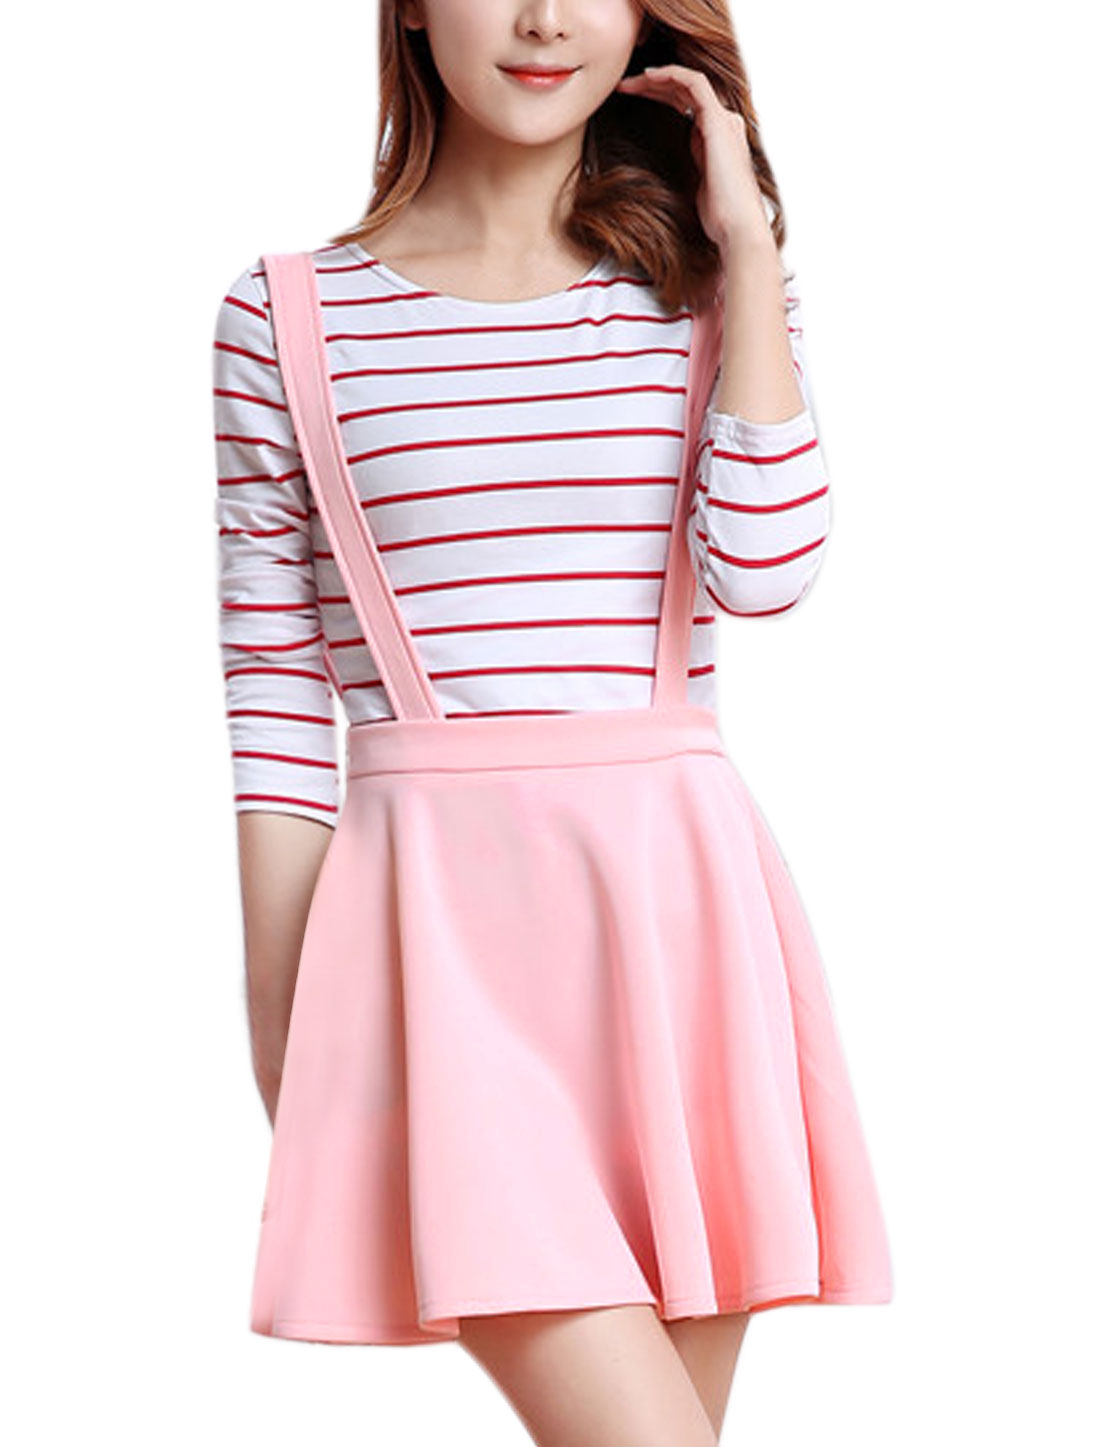 Women Detachable Straps Zipper Side A Line Suspender Skirt Pink M